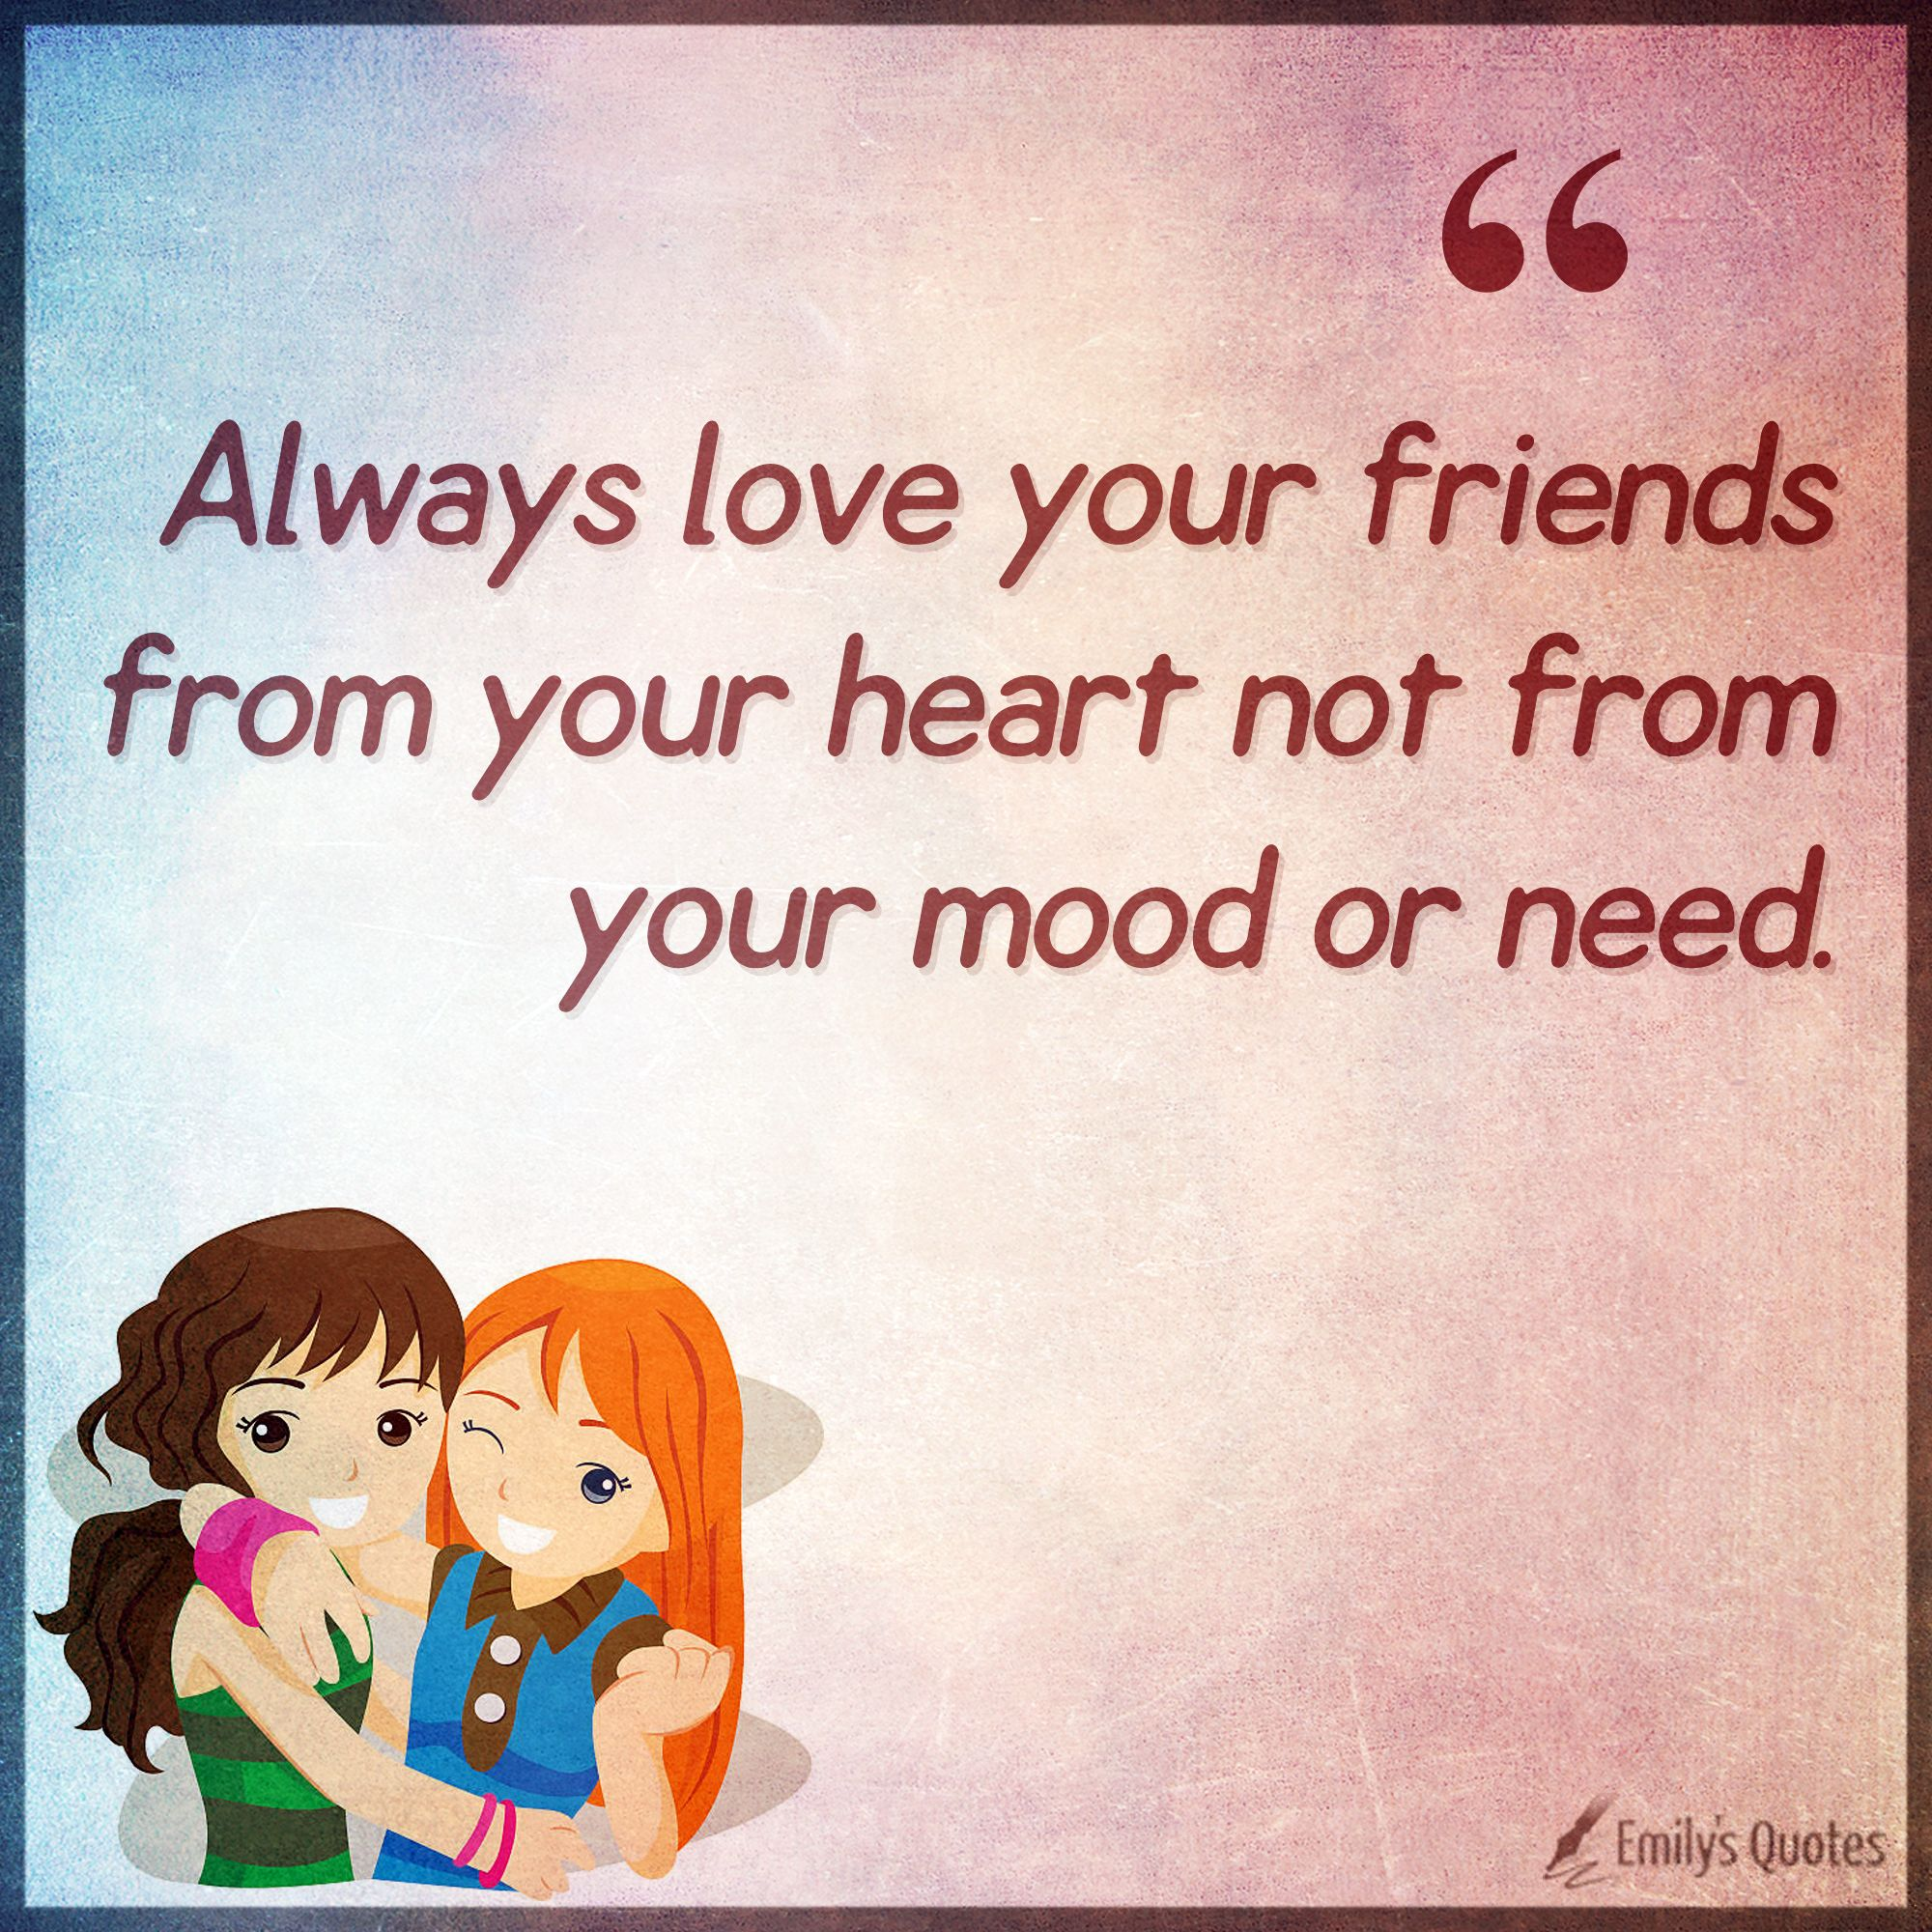 Always Love Your Friends From Your Heart Not From Your Mood Or Need Popular Inspirational Quotes At Emilysquotes Love You Friend Inspirational Quotes With Images Always Love You